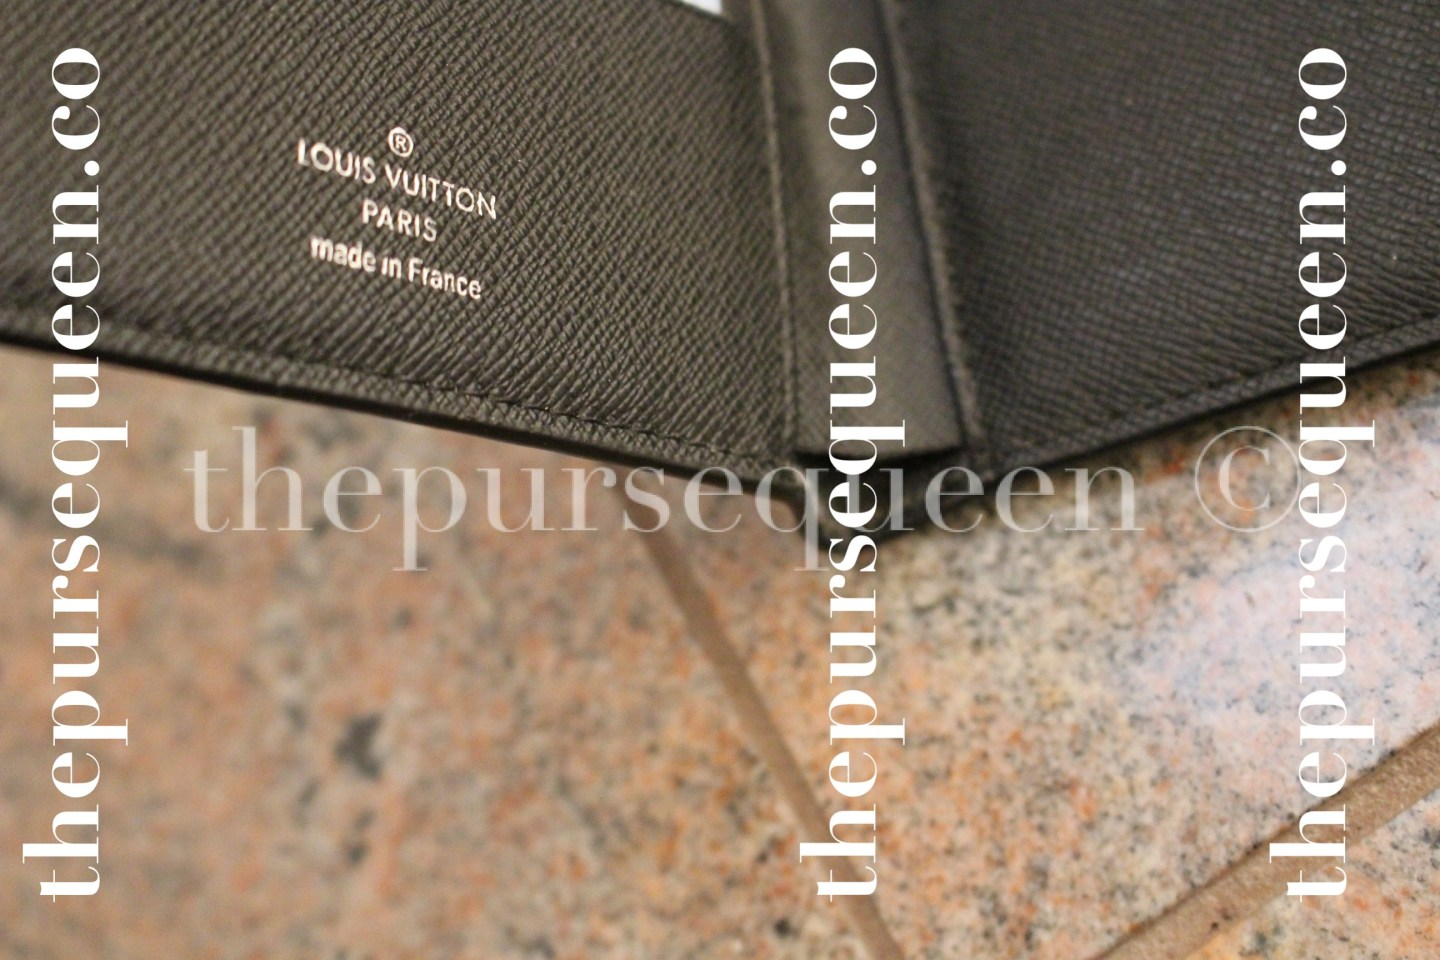 Louis Vuitton Damier Graphite Multiple Replica Wallet Interior Stamp